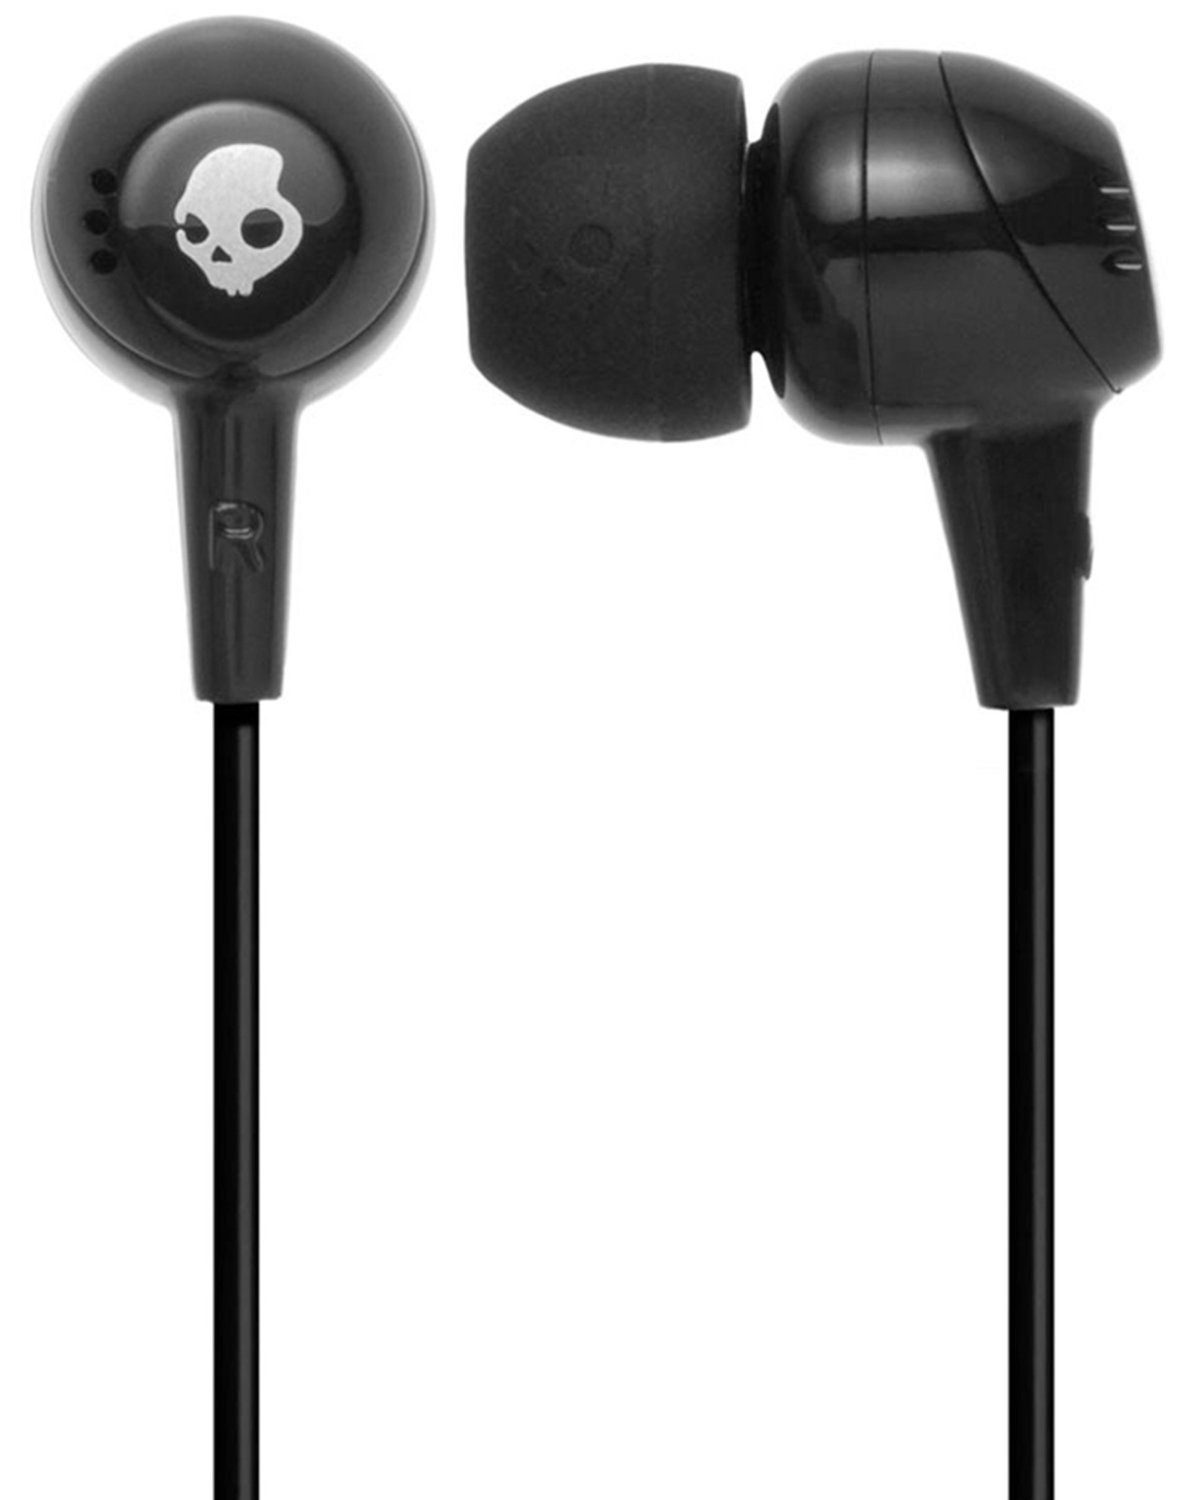 Skullcandy JIB S2DUDZ-003 In-Ear Headphones Image